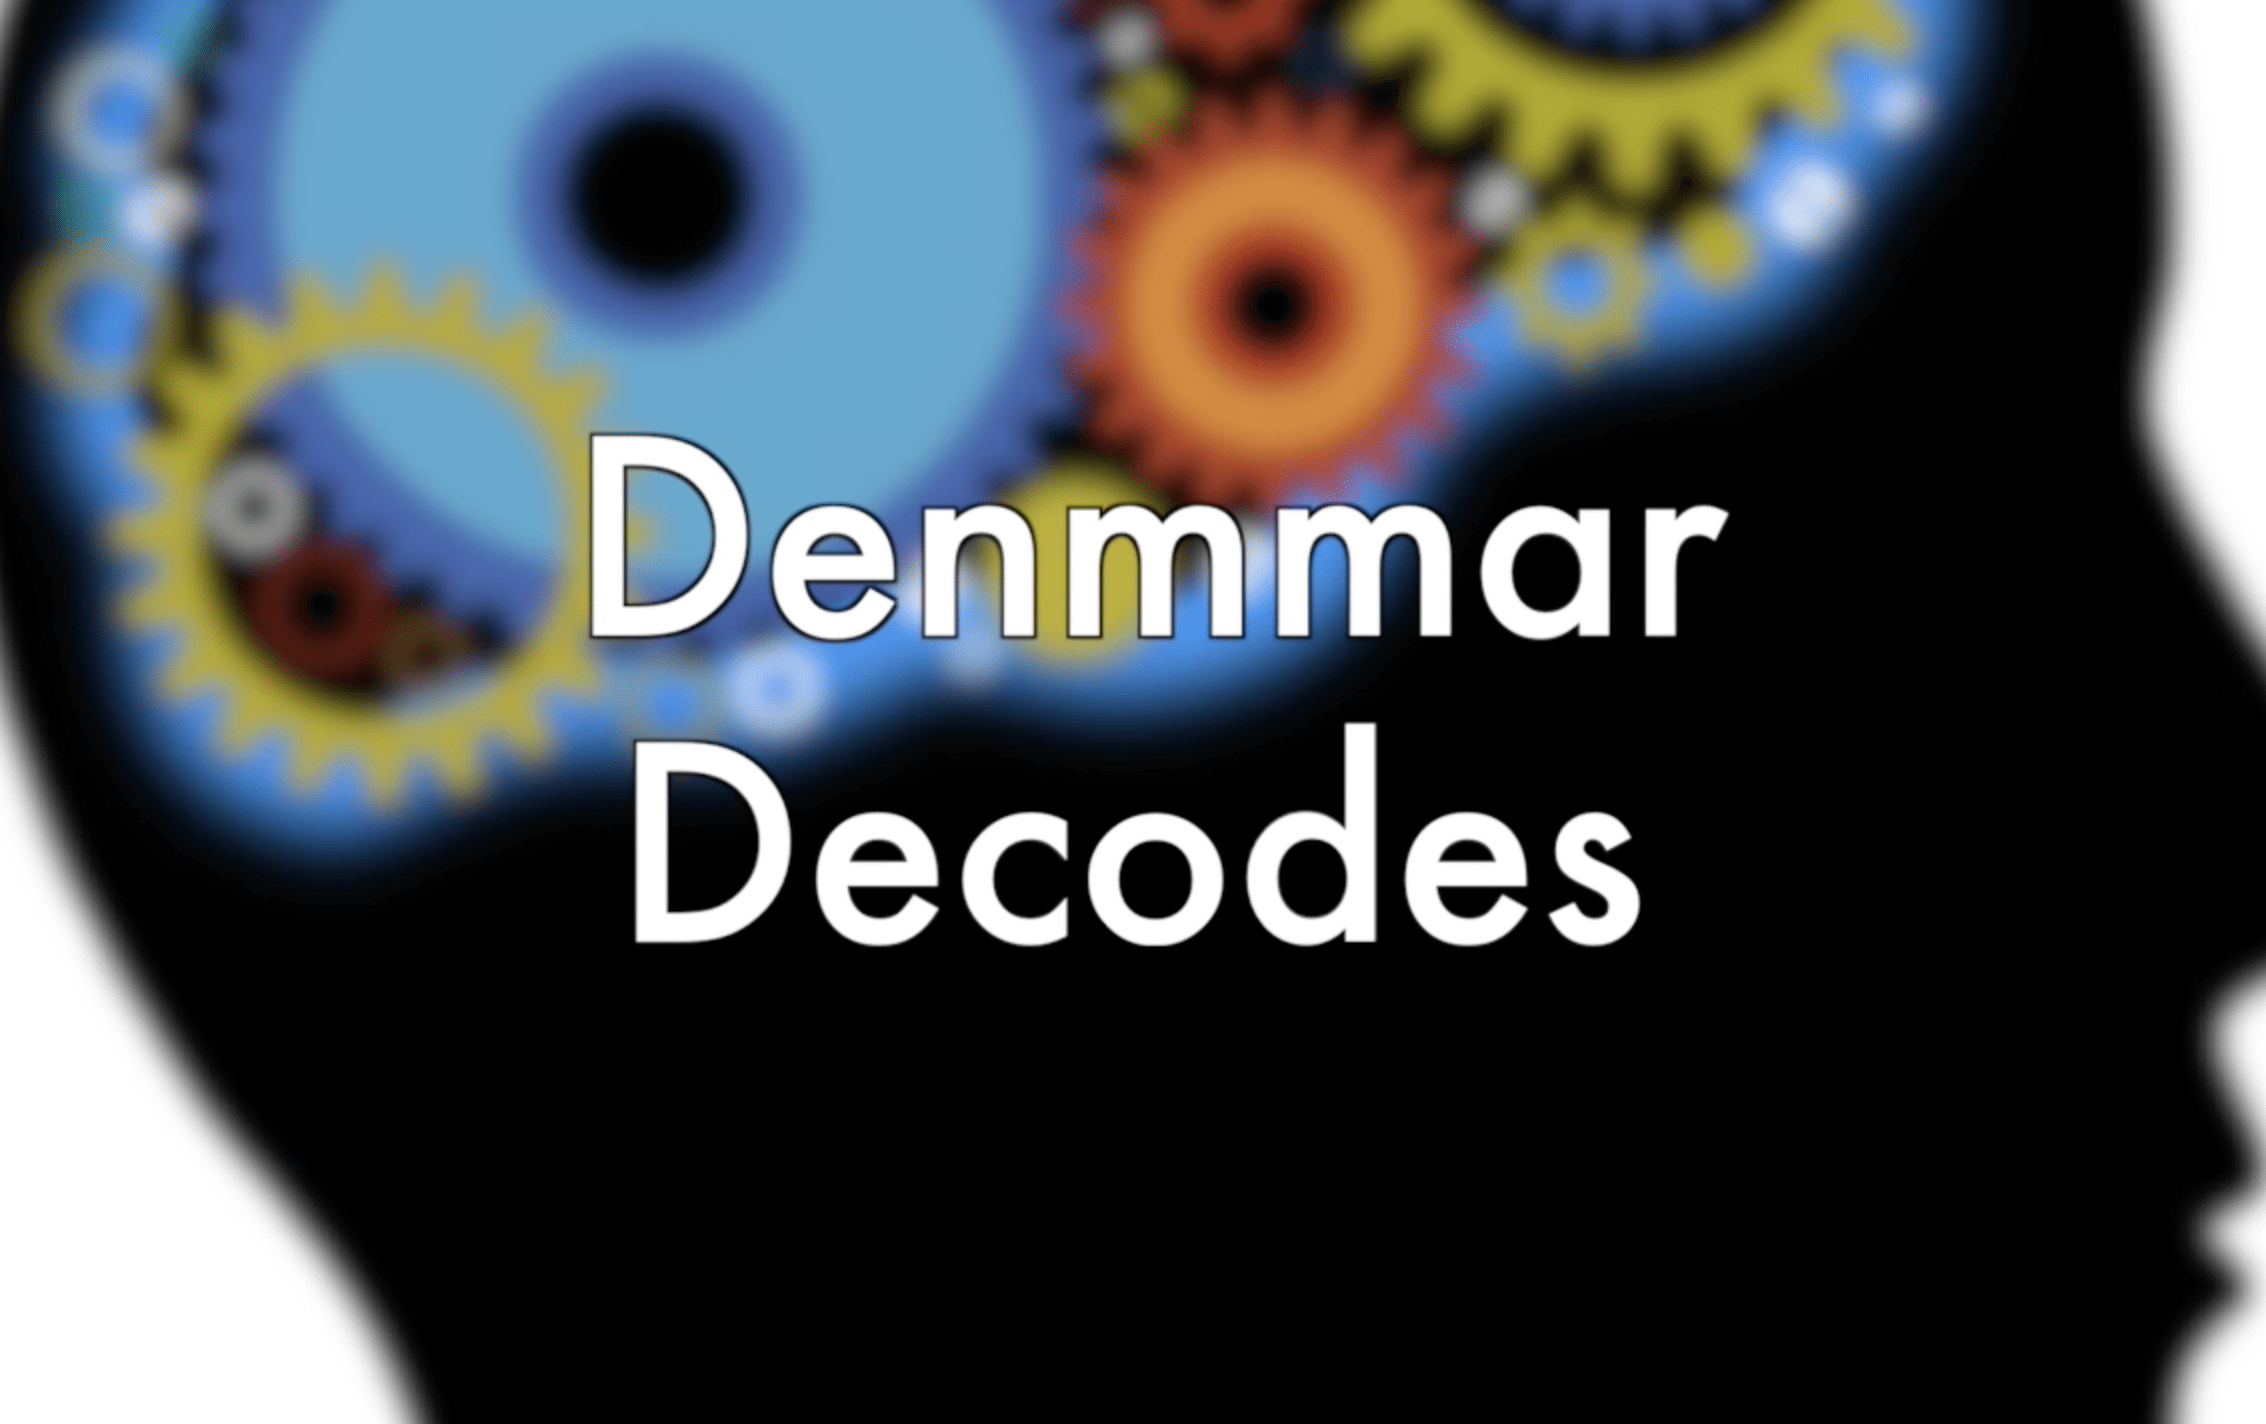 Denmaar Decodes: The Difference Between Mental Health and Medical Billing